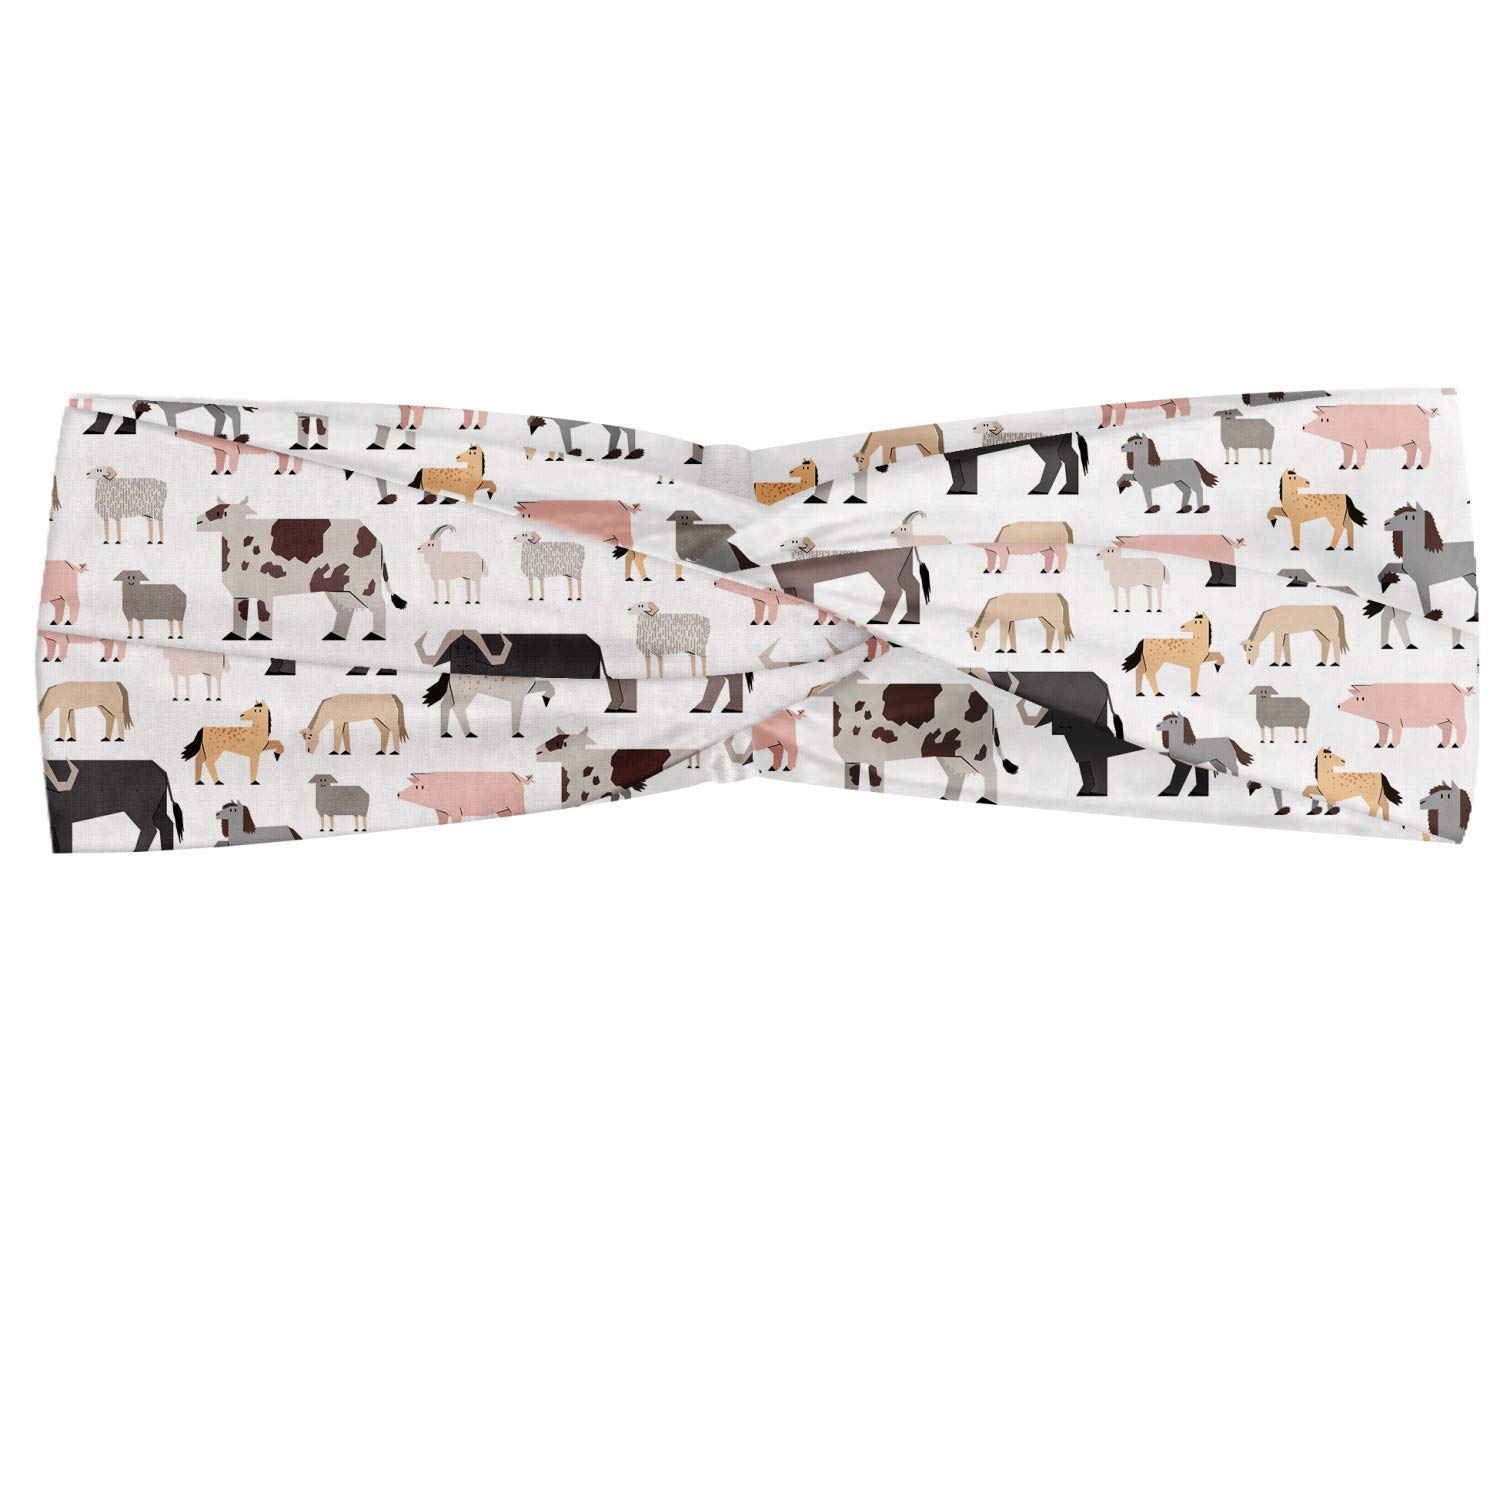 Ambesonne Cattle Headband, Composition of Graphic Sketch Cattle Animals as Ox Goat Pig and Buffalo, Elastic and Soft Women's Bandana for Sports and Everyday Use, Multicolor